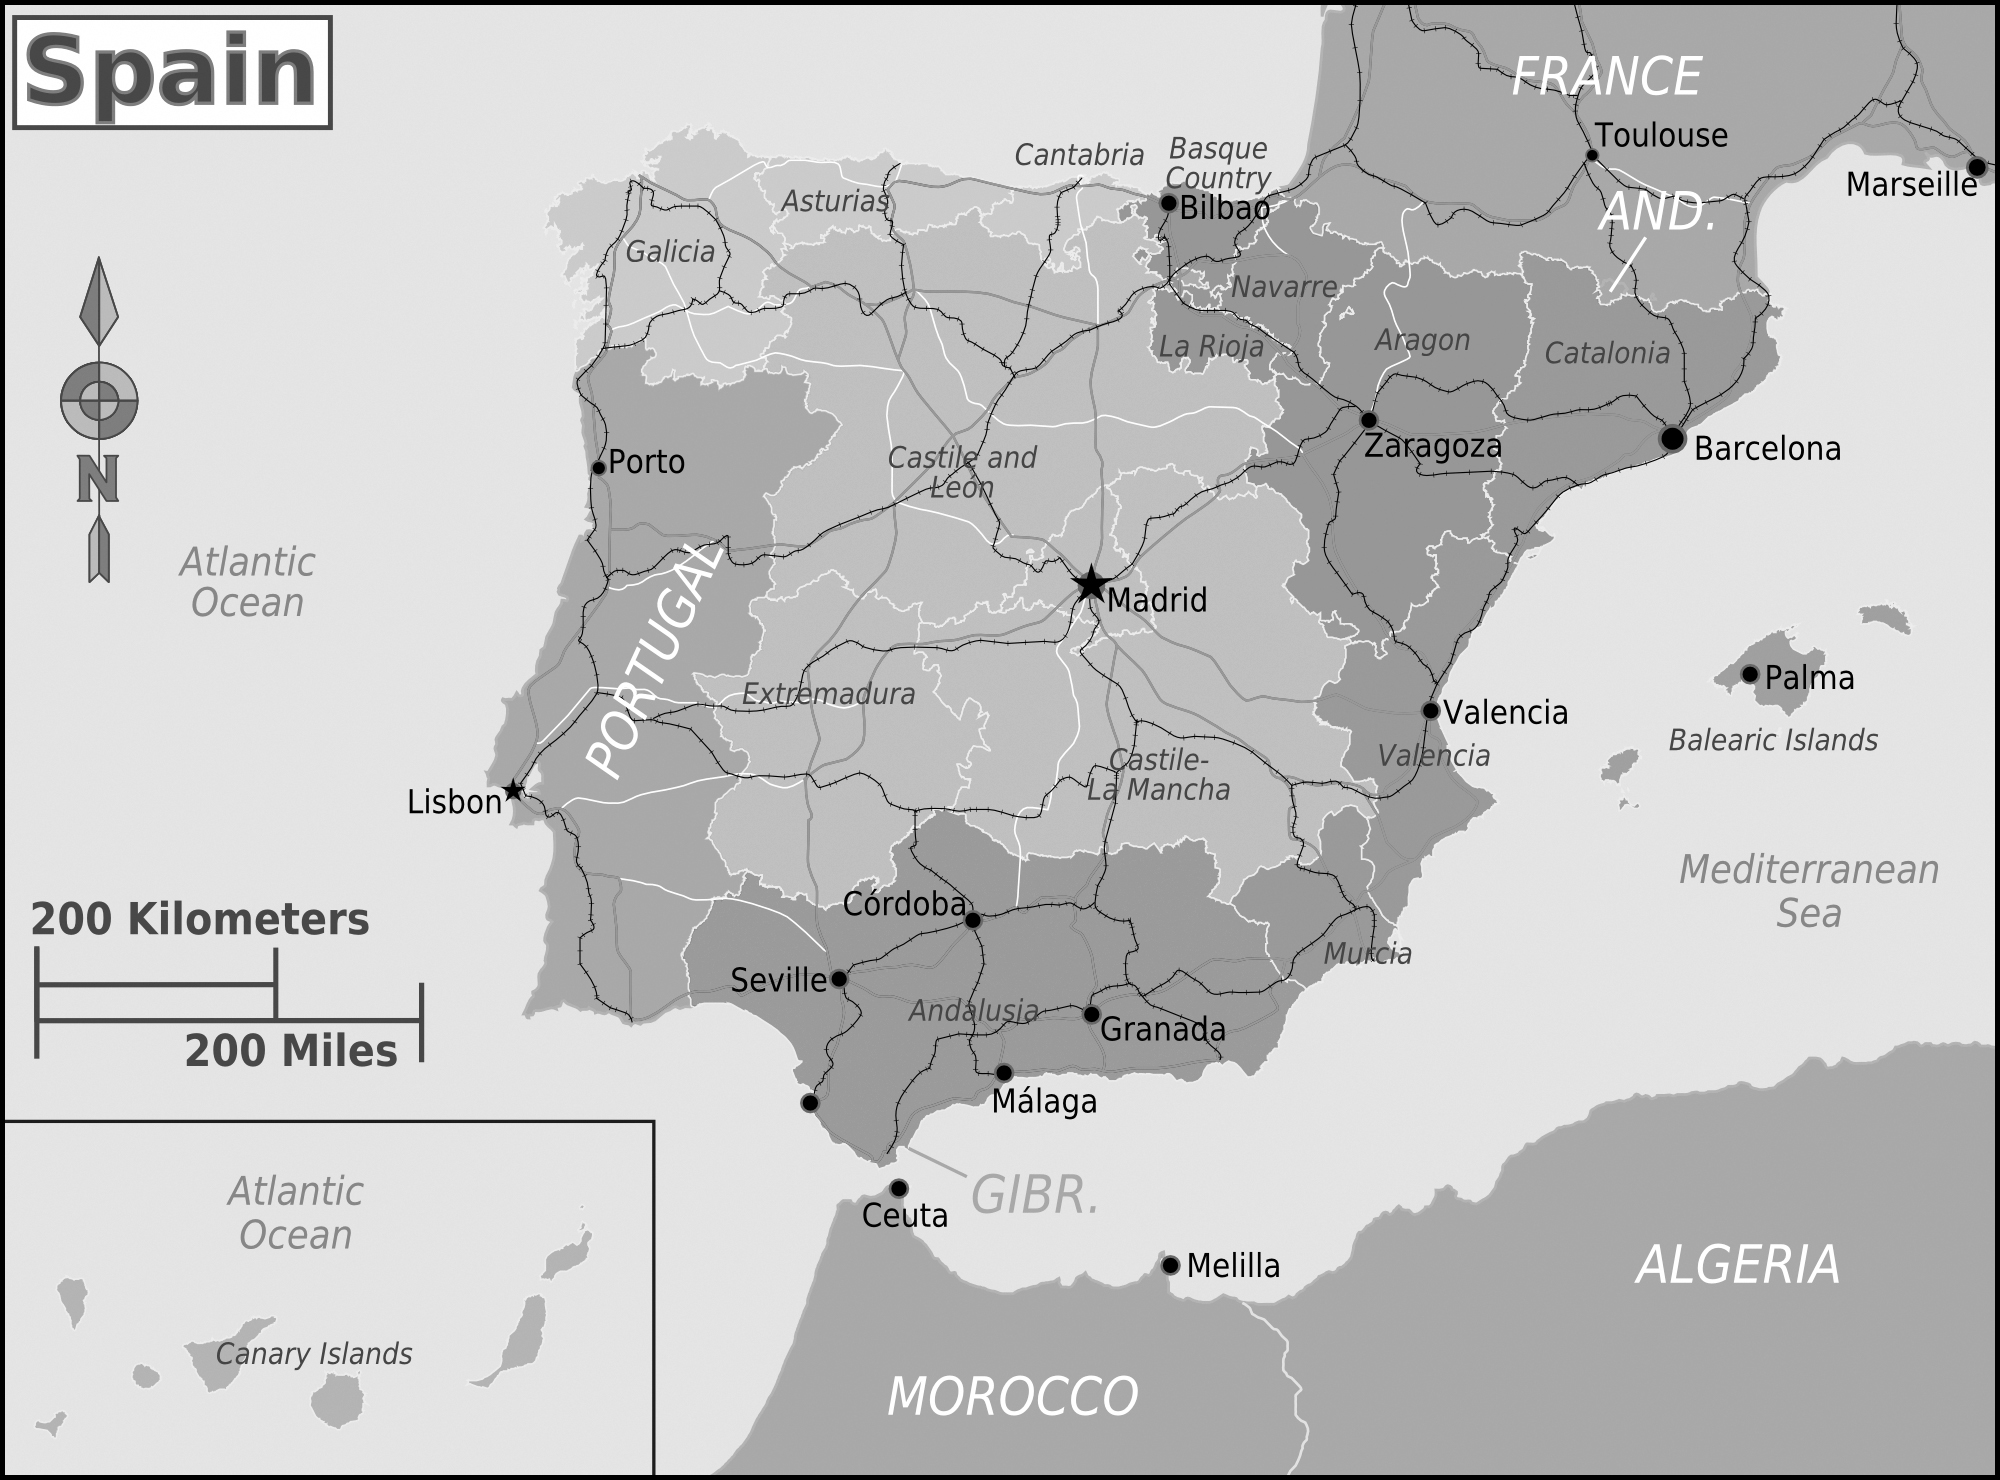 Map Of Spain Political.Detailed Political Map Of Spain Spain Detailed Political Map